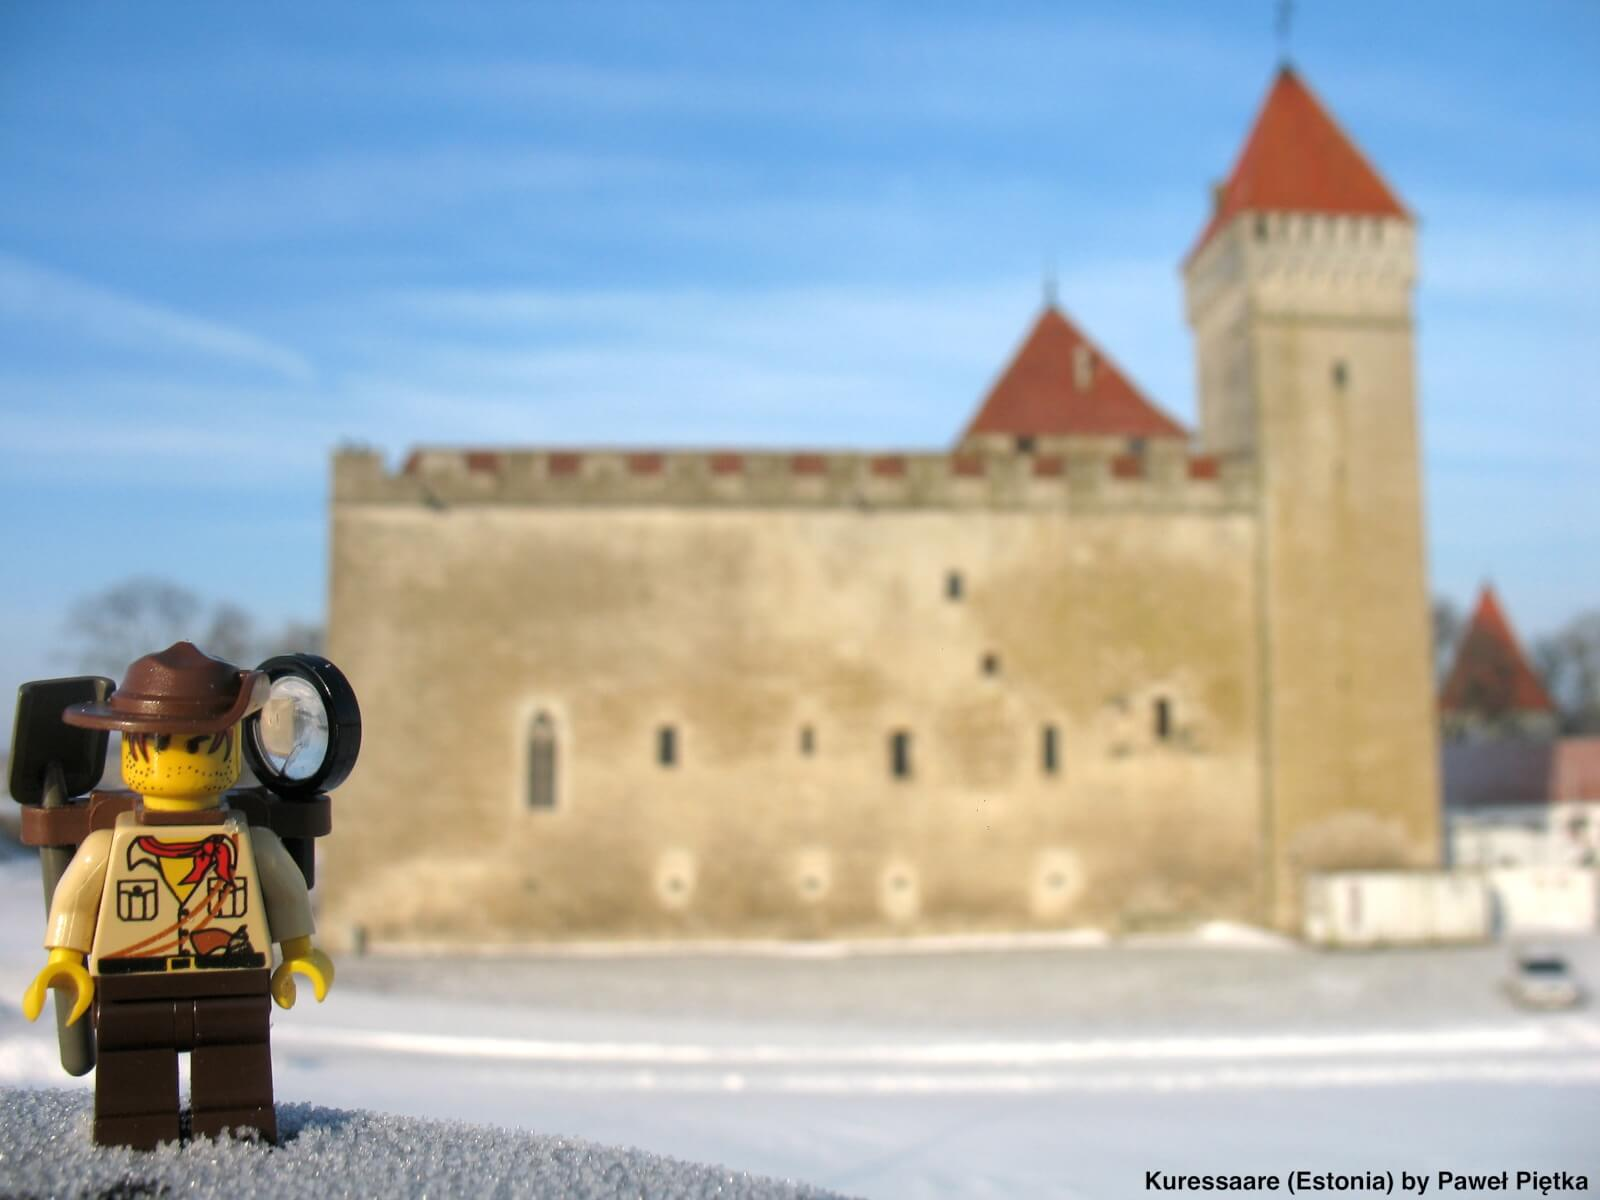 Kuressaare (Estonia) - Episcopal Castle